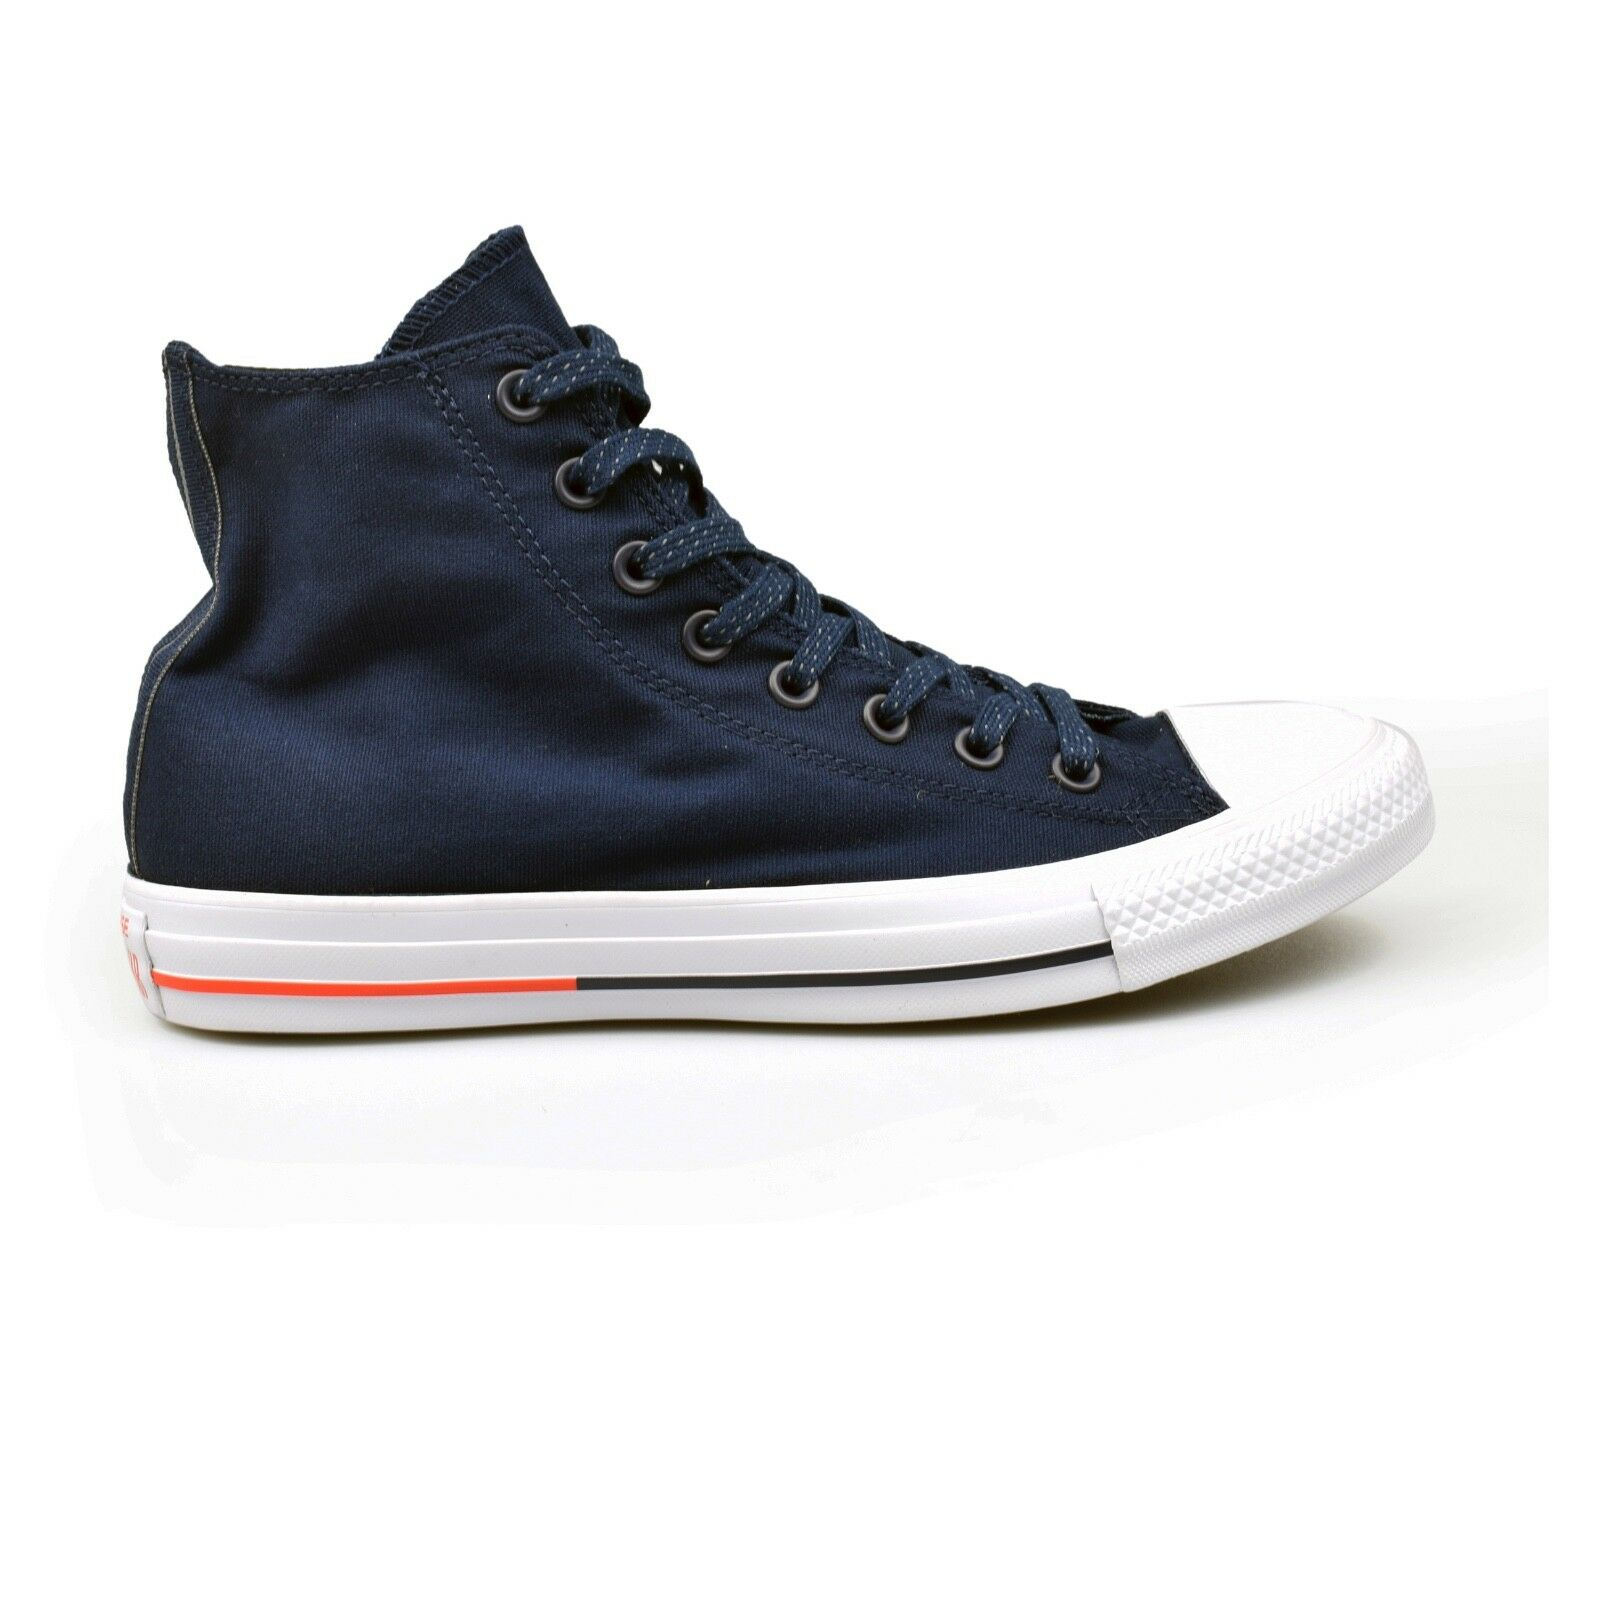 7e0ffd9a4188 Women s Unisex Shoes SNEAKERS Converse Chuck Taylor All Star 153793c ...